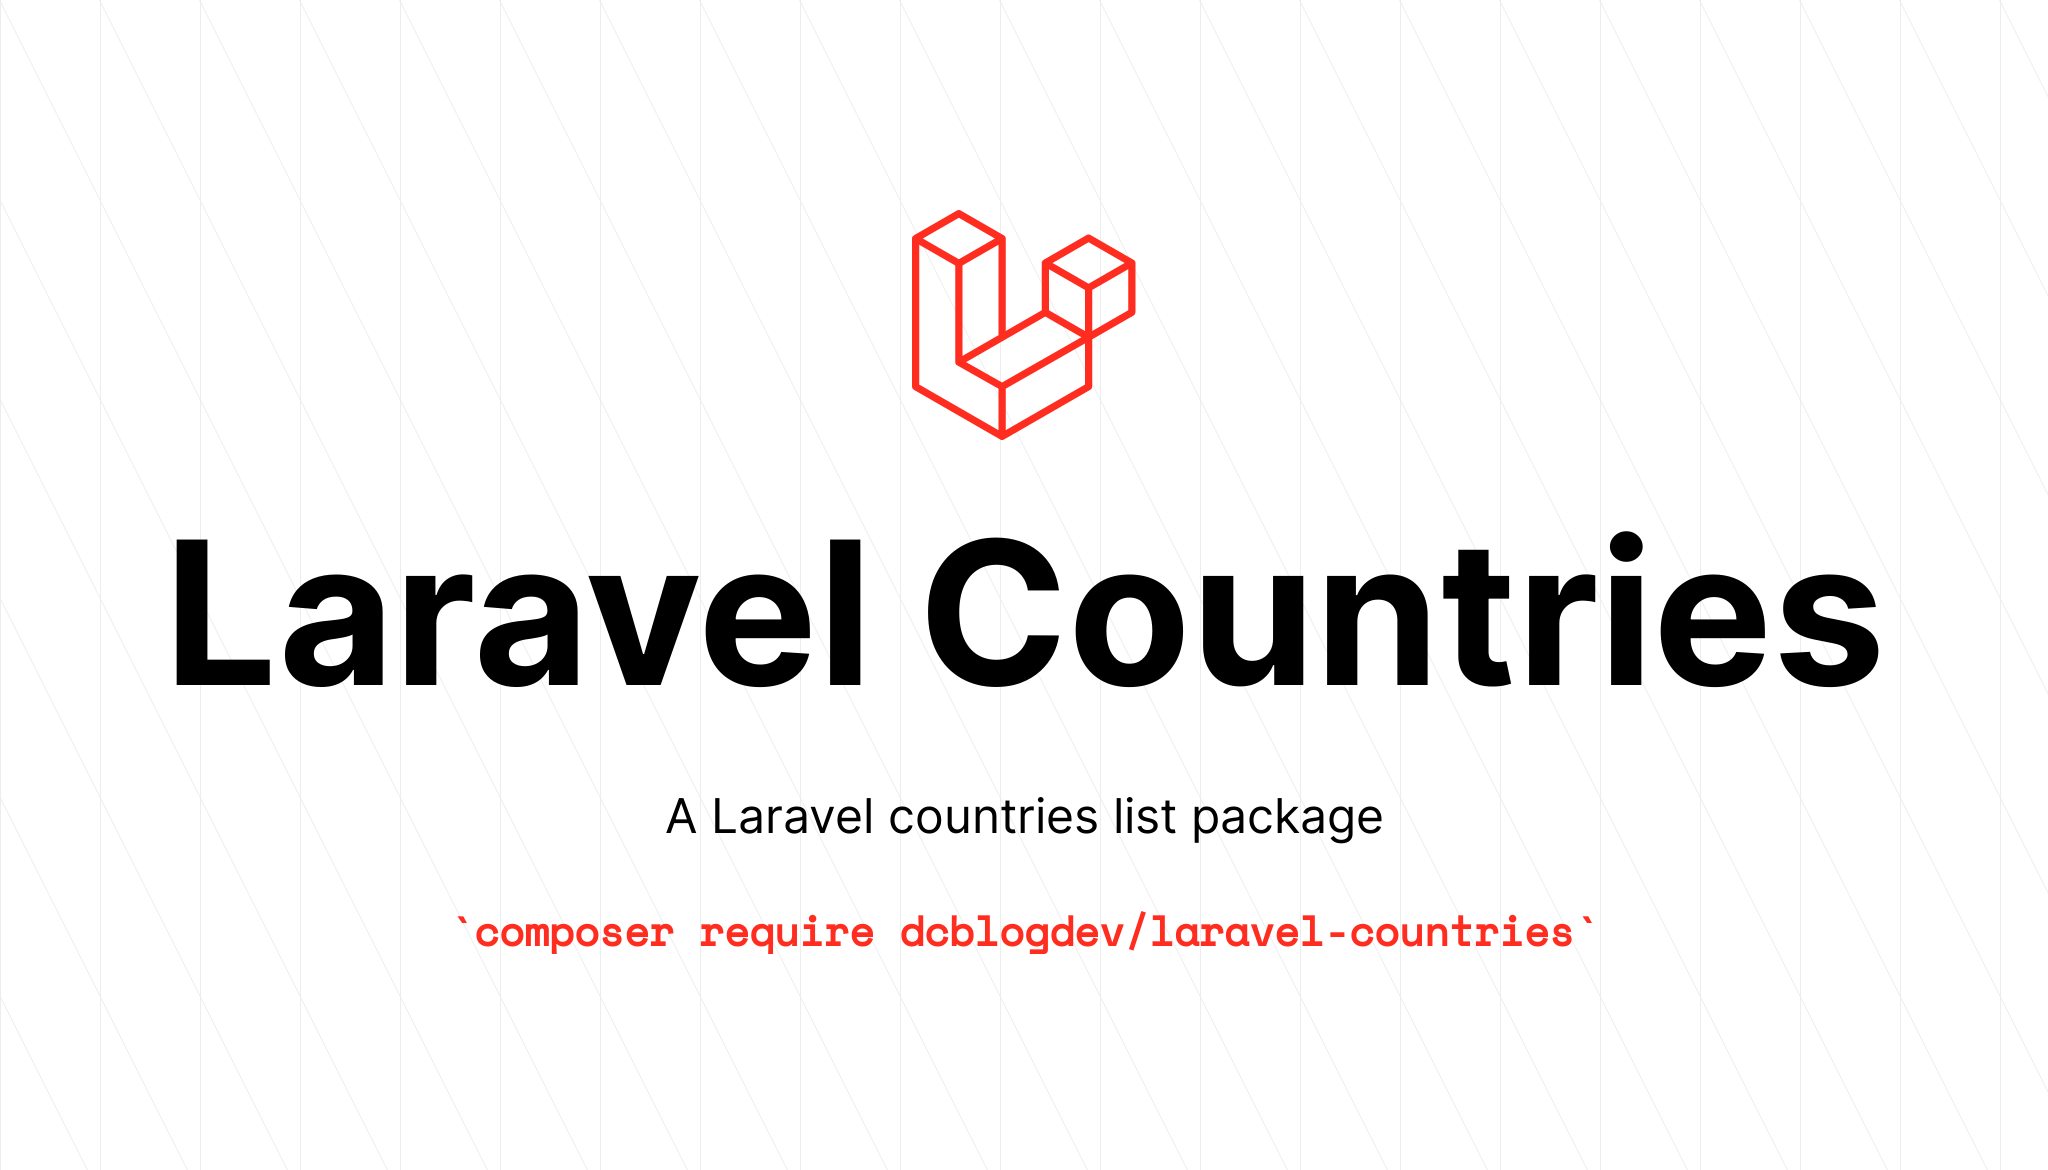 Laravel Countries